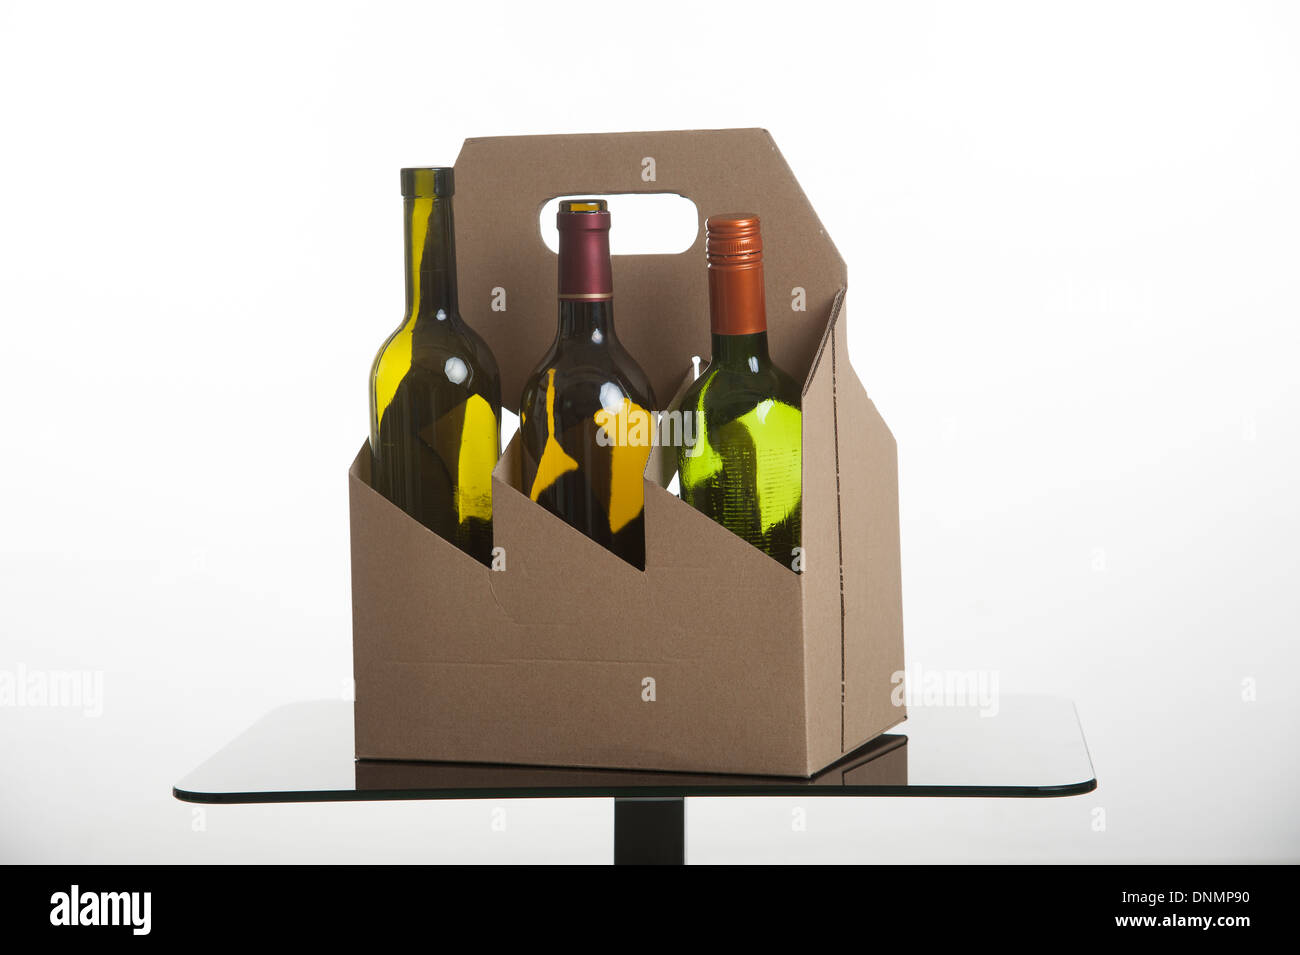 Cardboard wine bottle carrier both items suitable for recycling - Stock Image